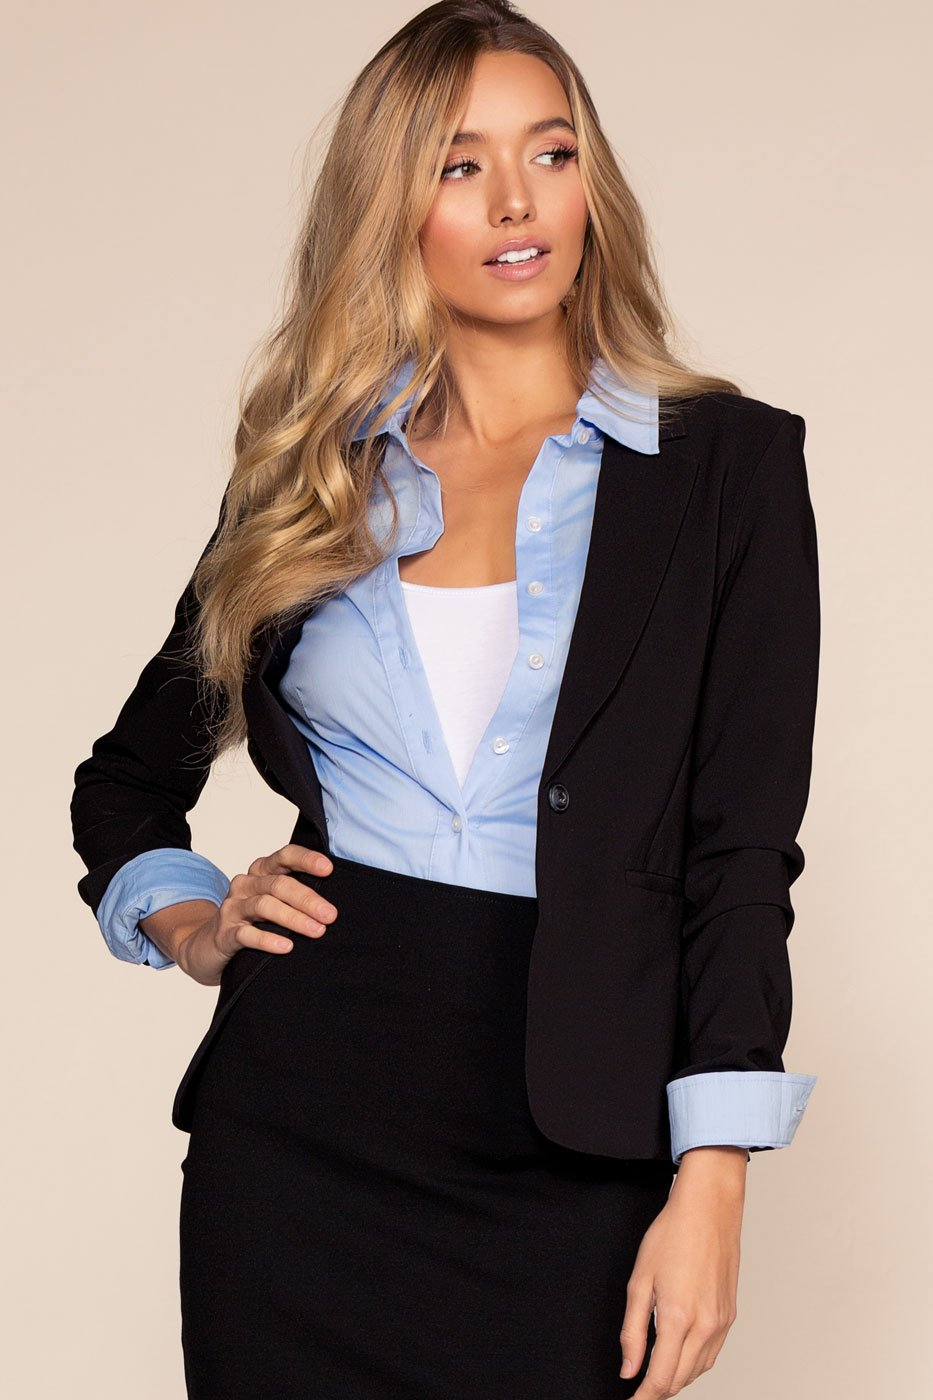 Jackets - Now Or Never Blazer - Black